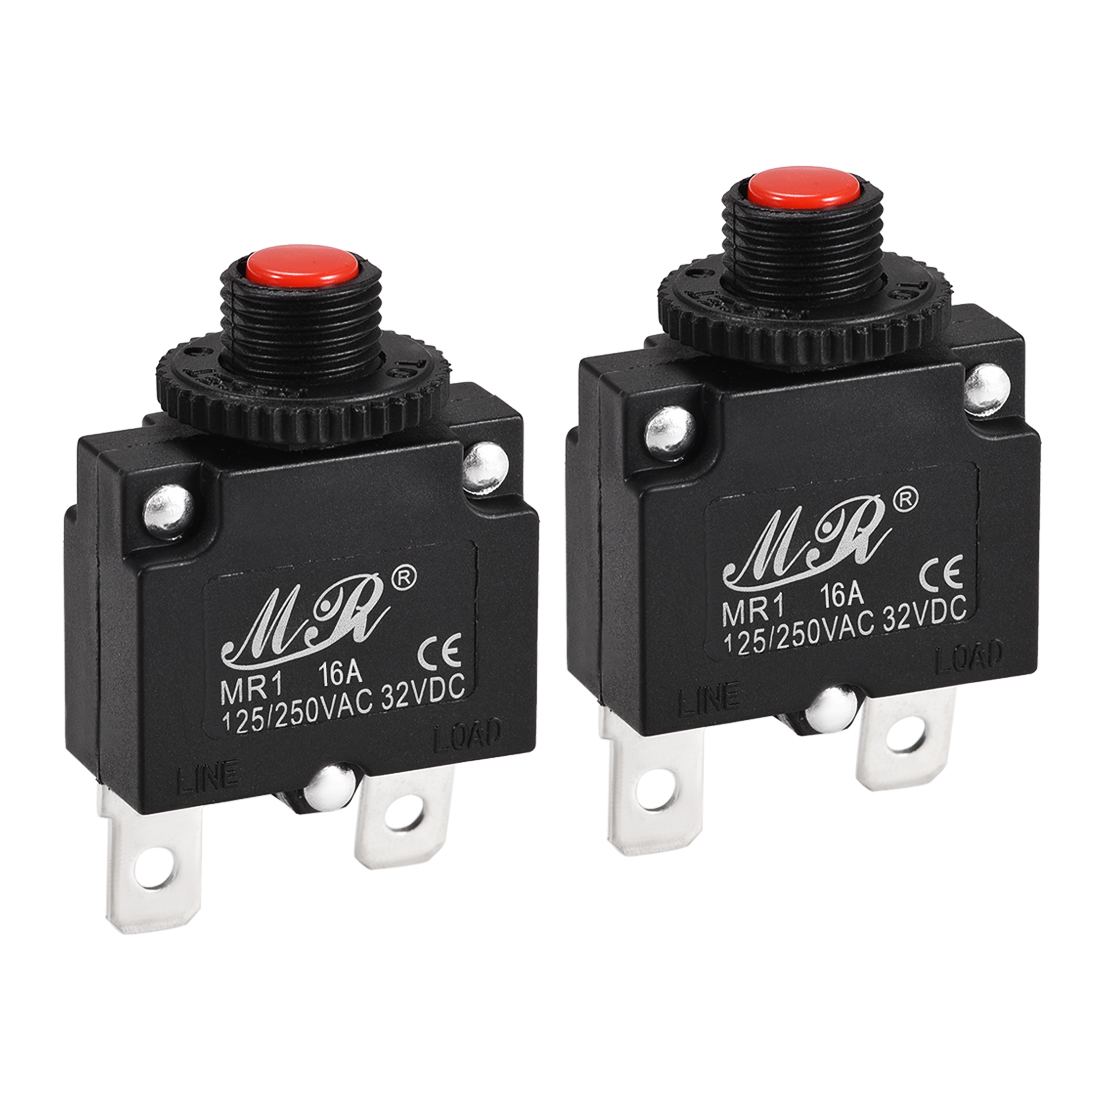 2 Pcs 16A Push Button Manual Reset Overload Protector Thermal Circuit Breakers